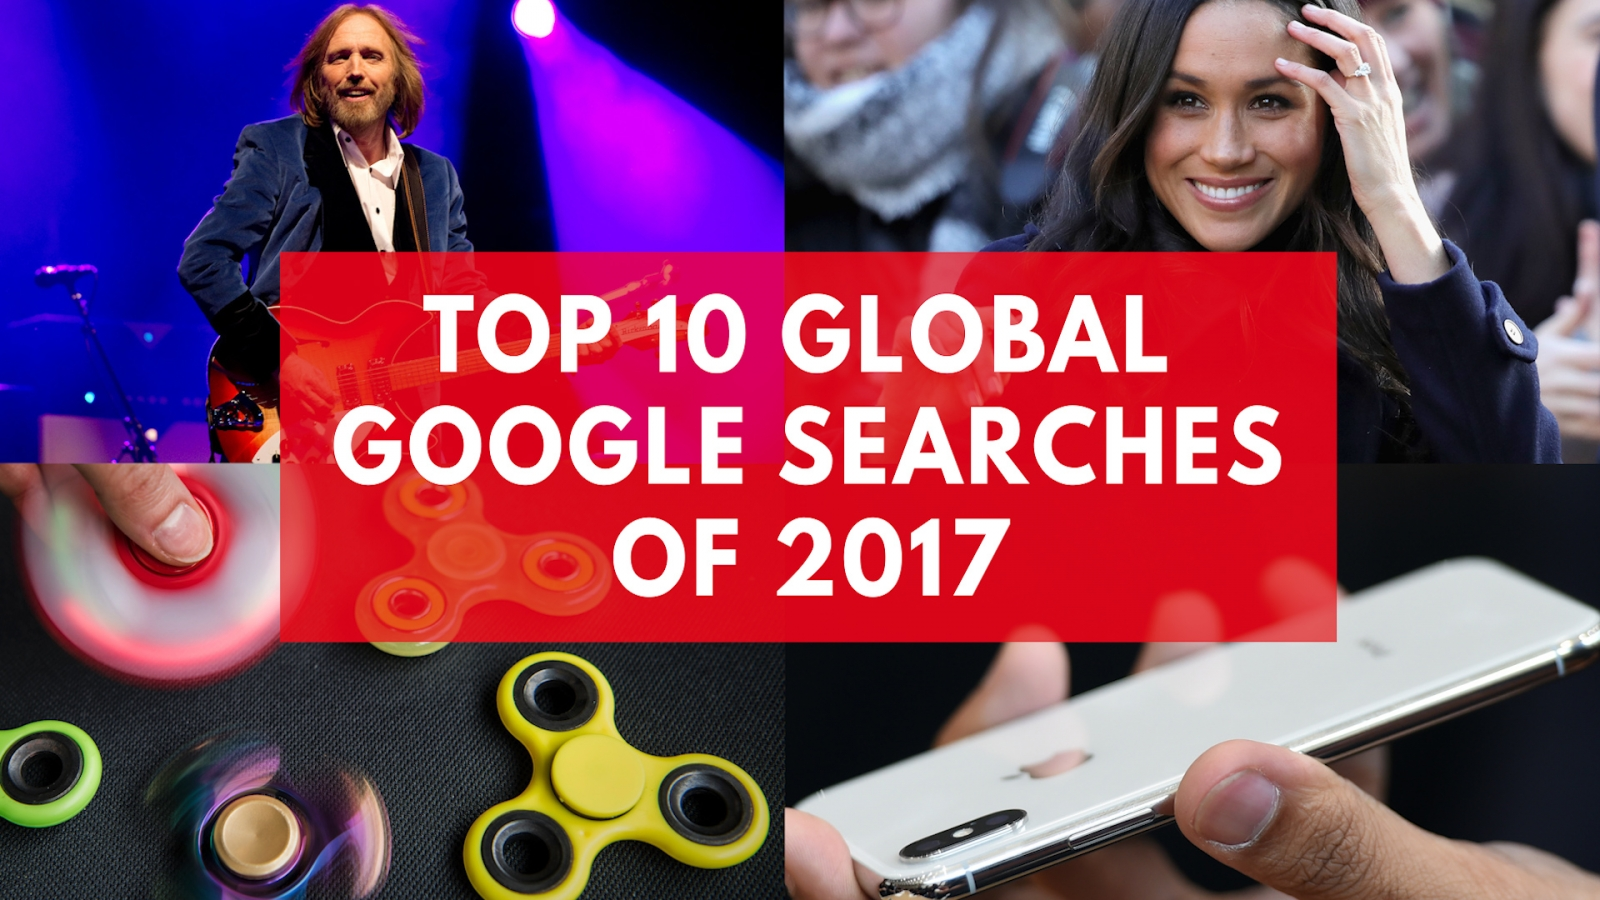 top-10-global-google-searches-of-2017